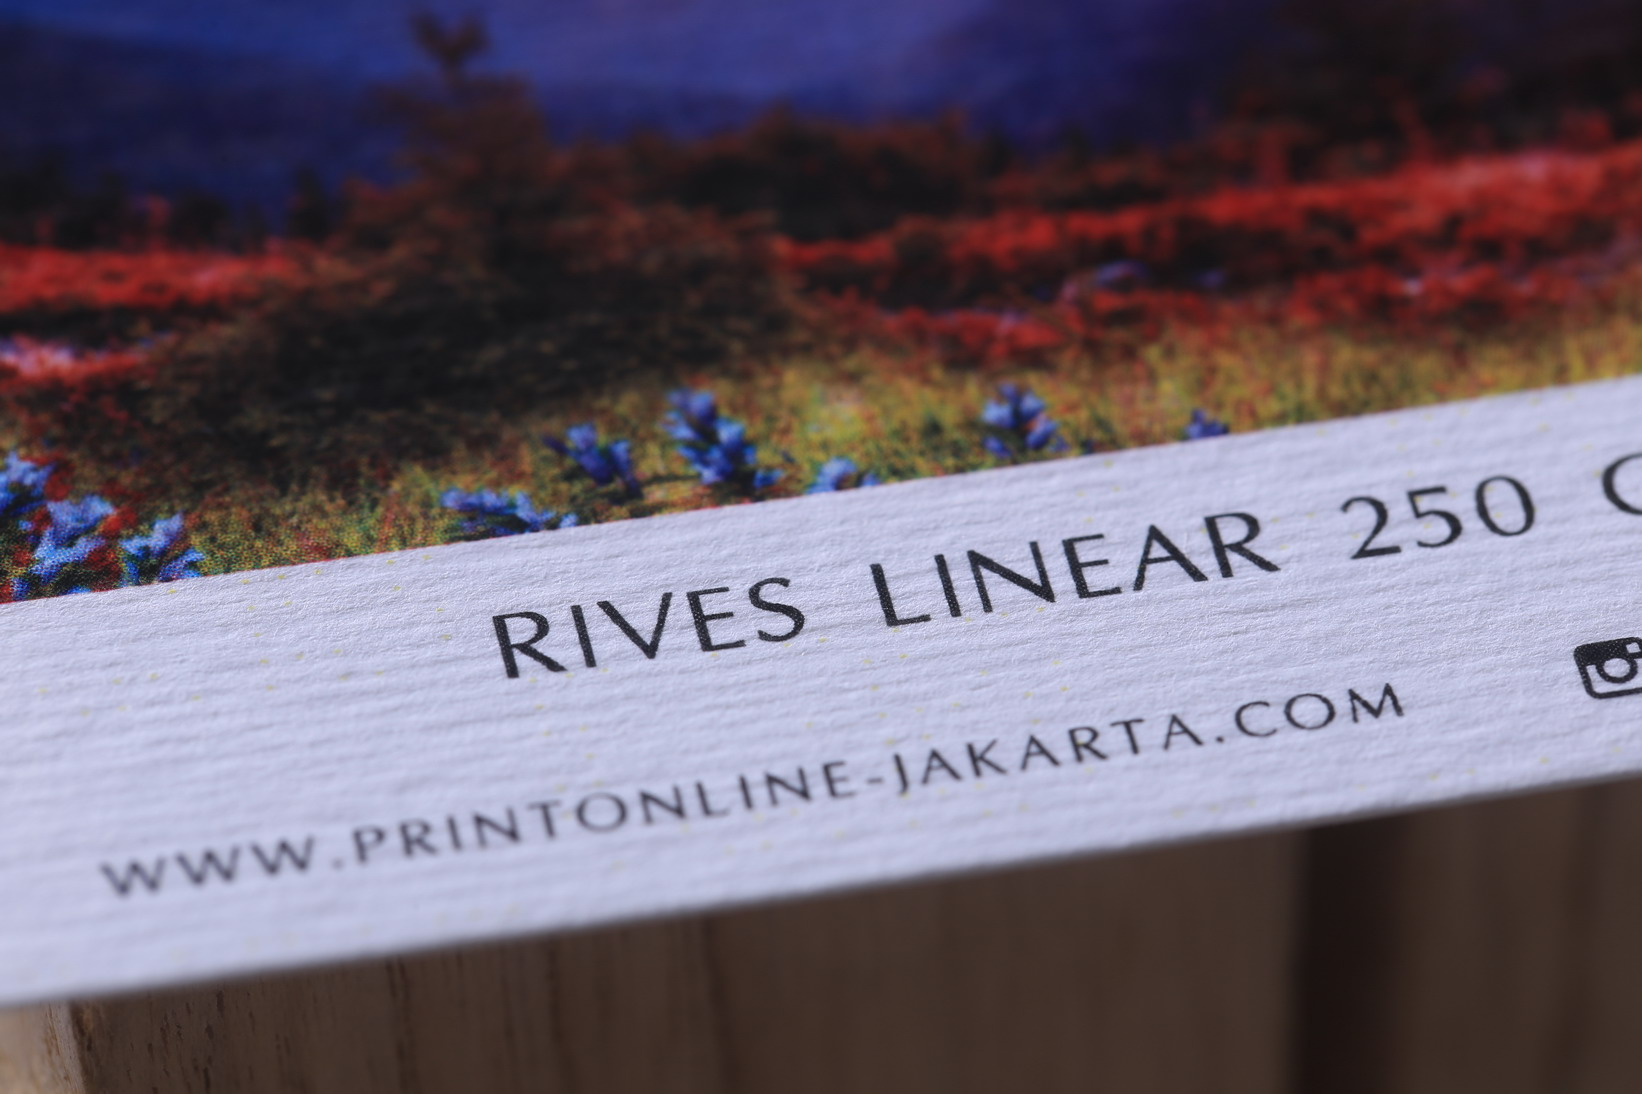 Rives Linear 250 grm